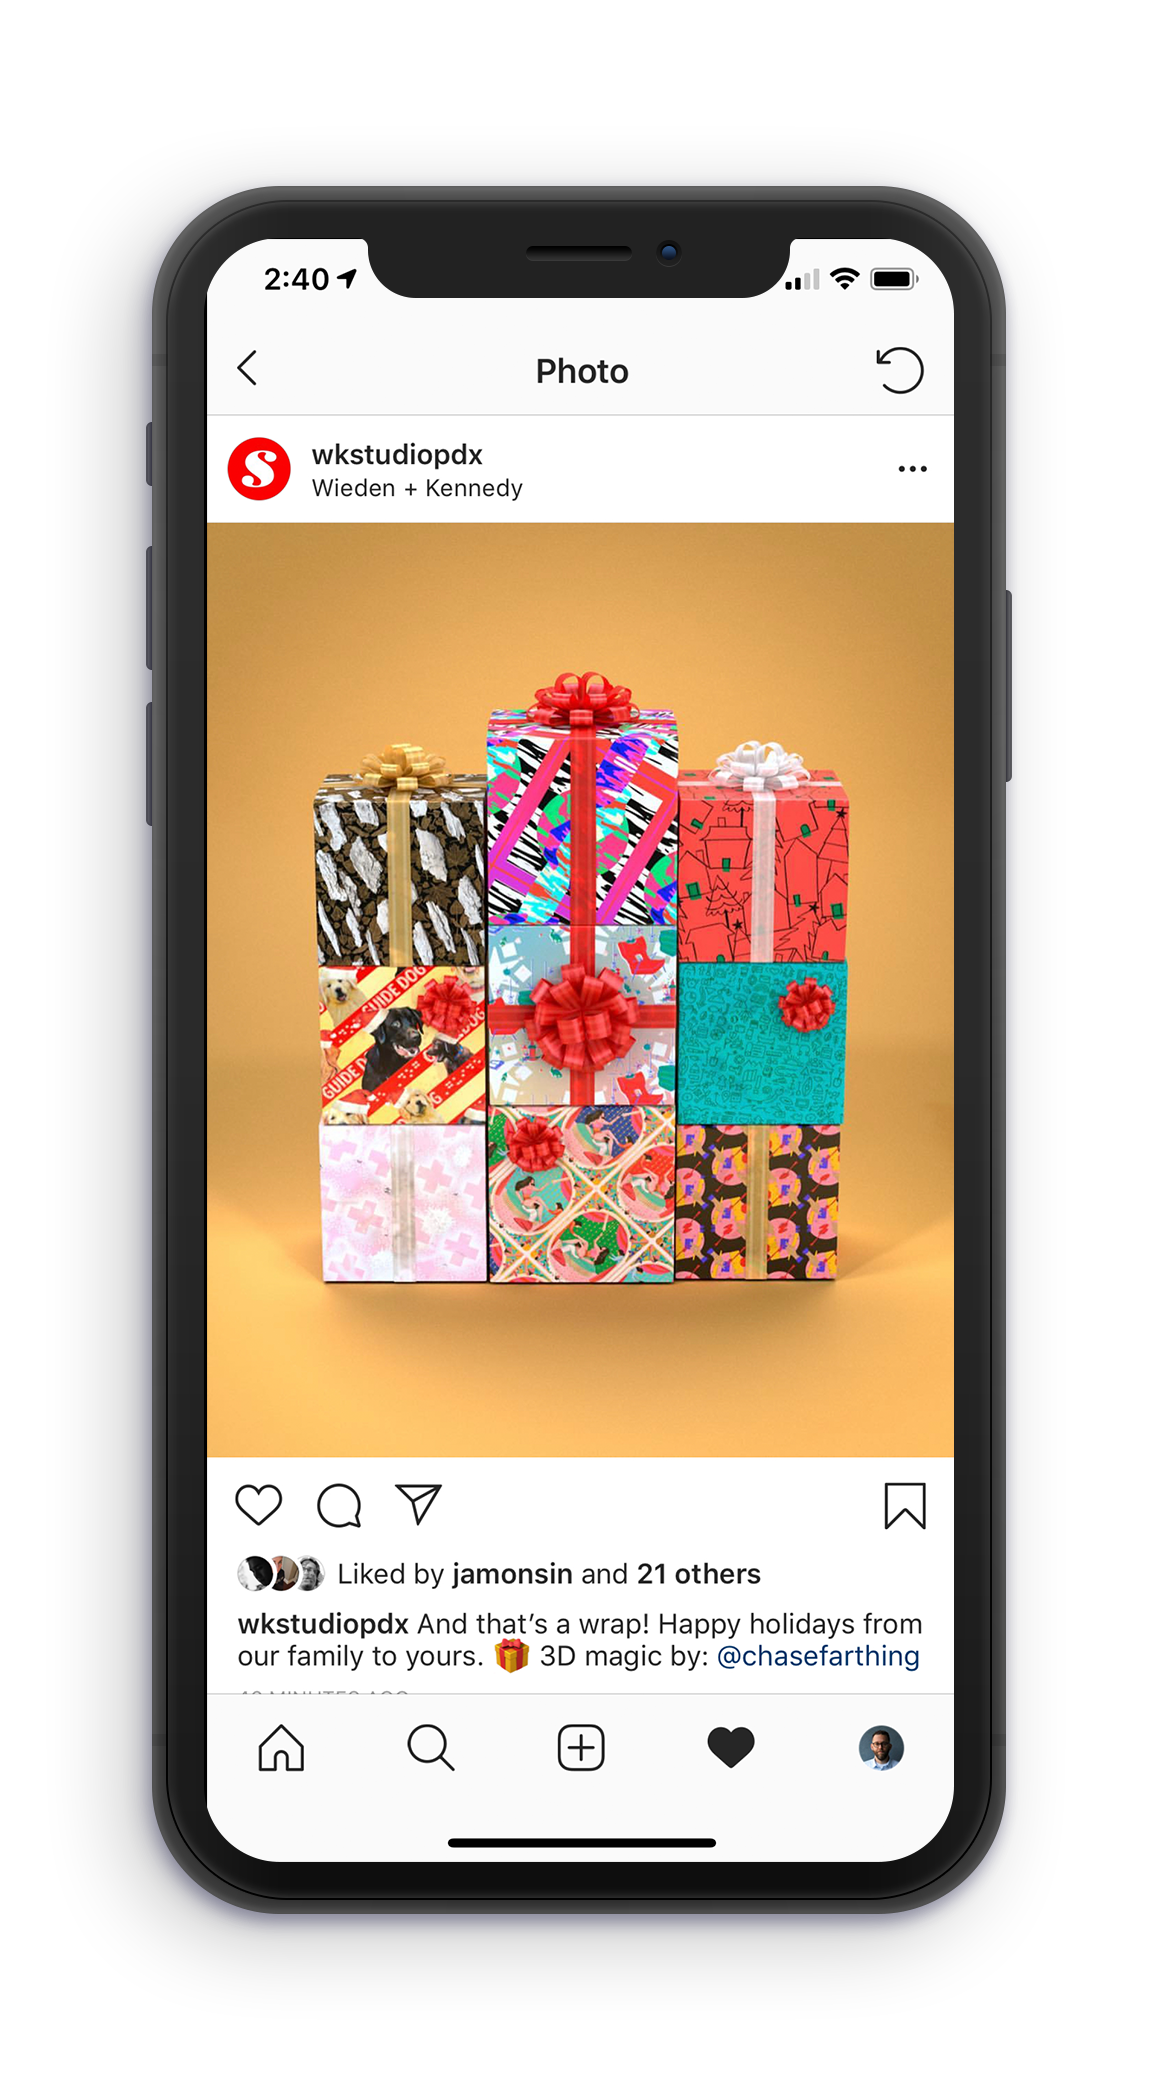 All nine designs can be seen in application wrapped around gift boxes from the Wieden+Kennedy studio Instagram account.